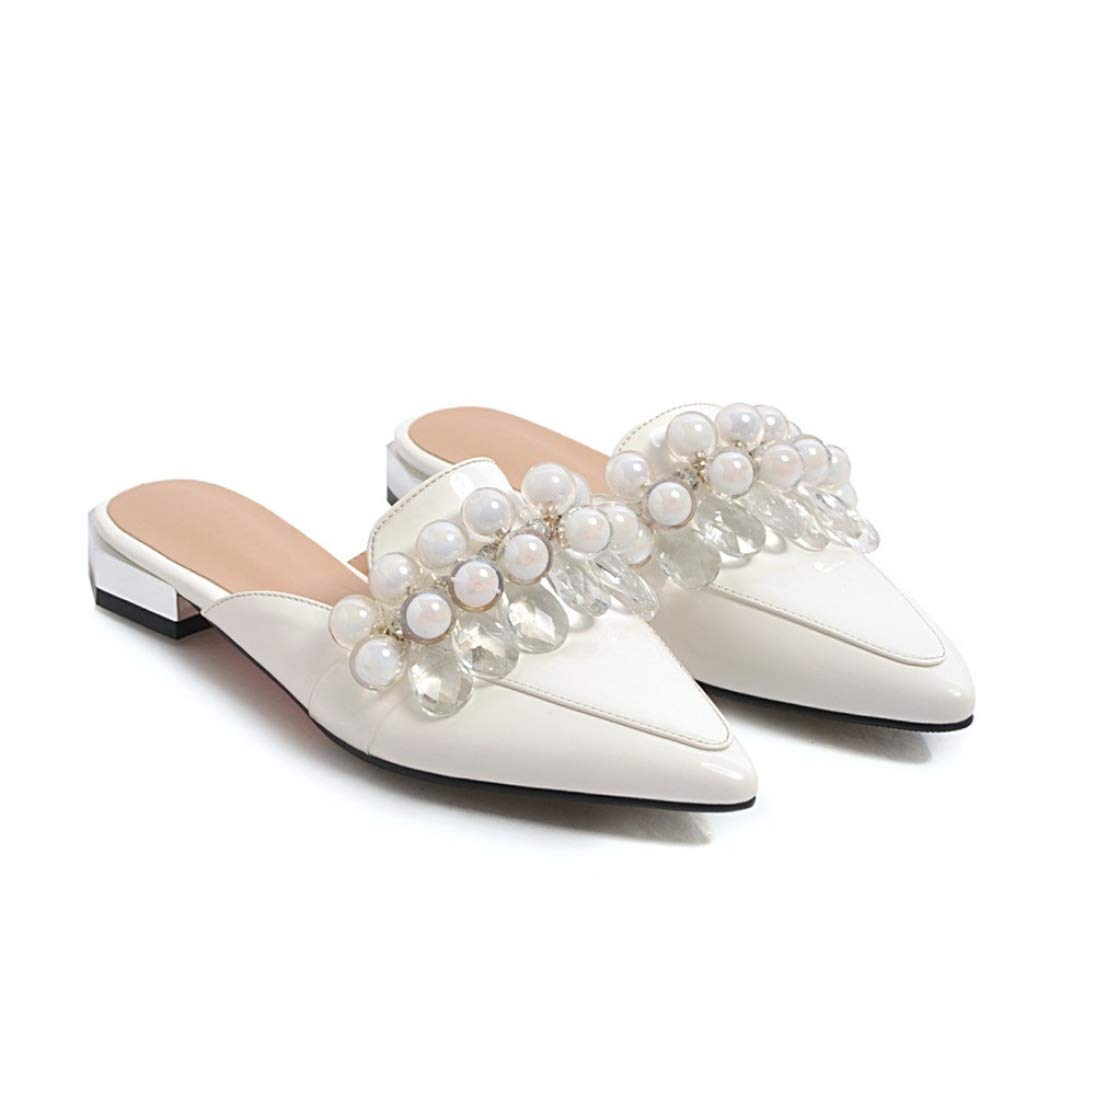 White T-JULY Women Pumps Pu Leather Slip-on shoes String Bead Pointed Toe Square Low Heels Dress Mules Casual shoes